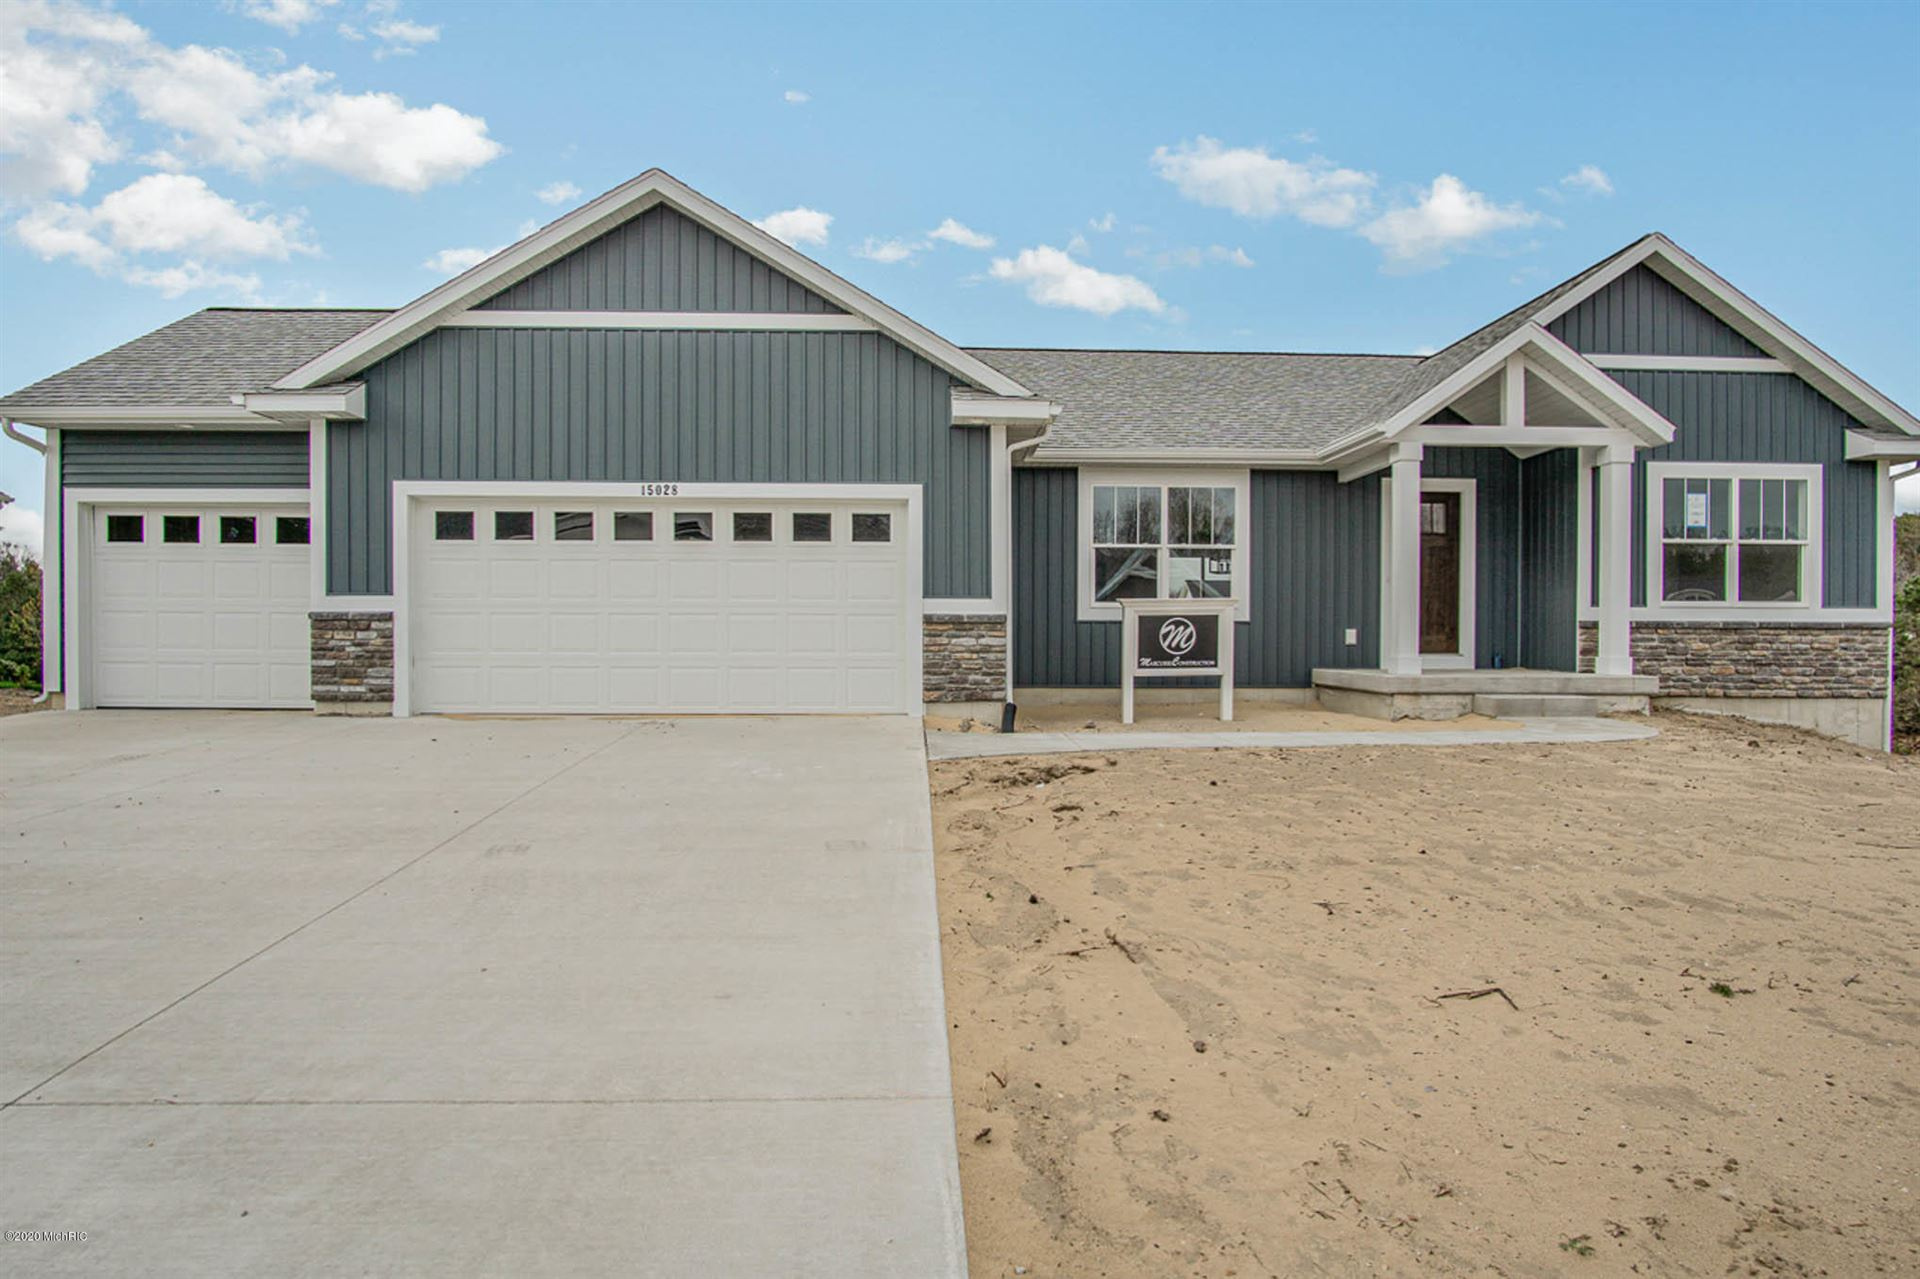 Photo of 15028 Copperwood Drive, Grand Haven, MI 49417 (MLS # 19057840)